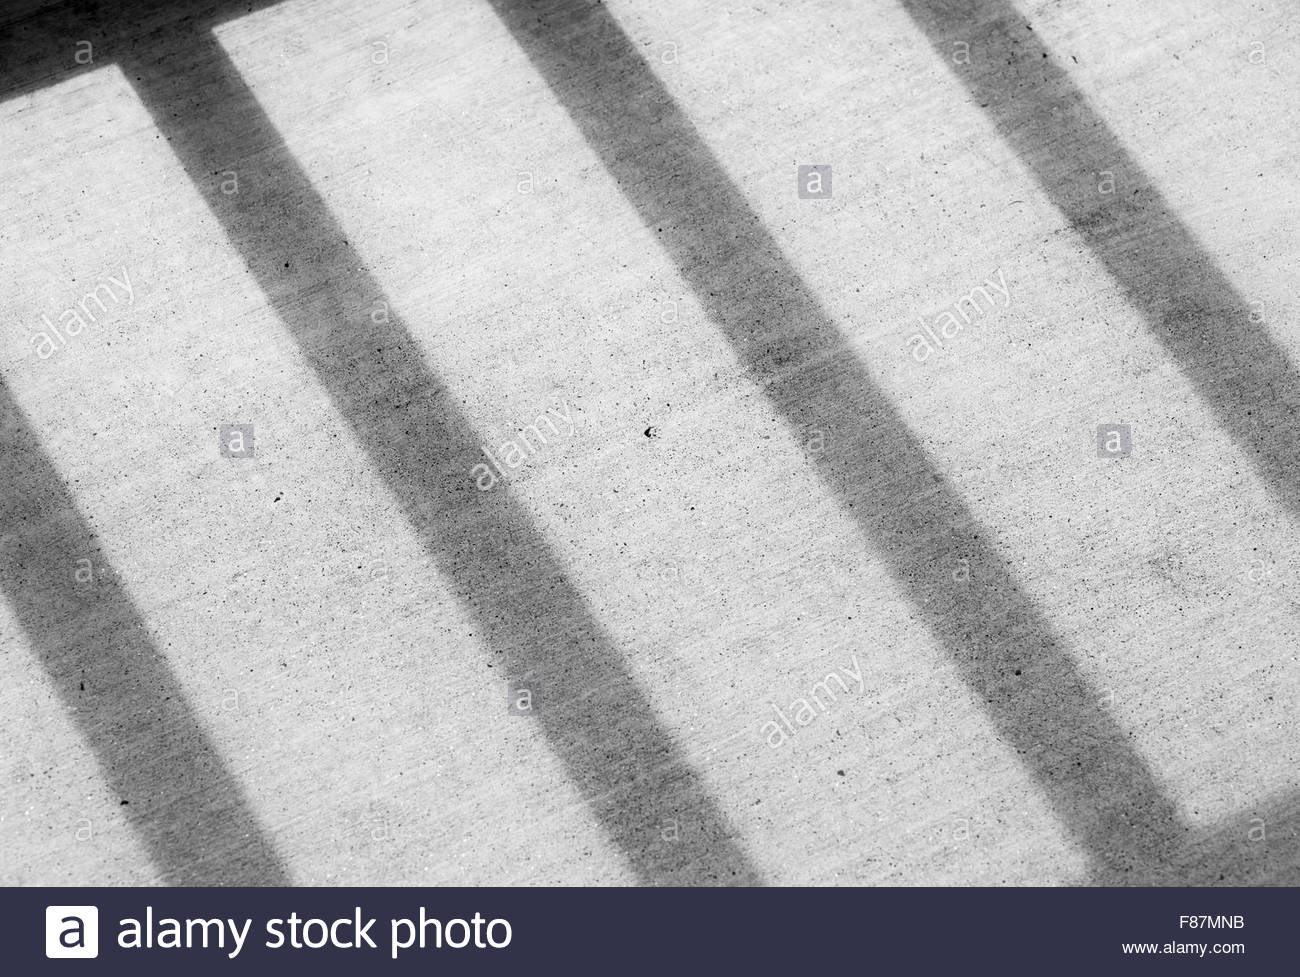 shadows, concrete, lines, shapes, patterns, abstract. - Stock Image